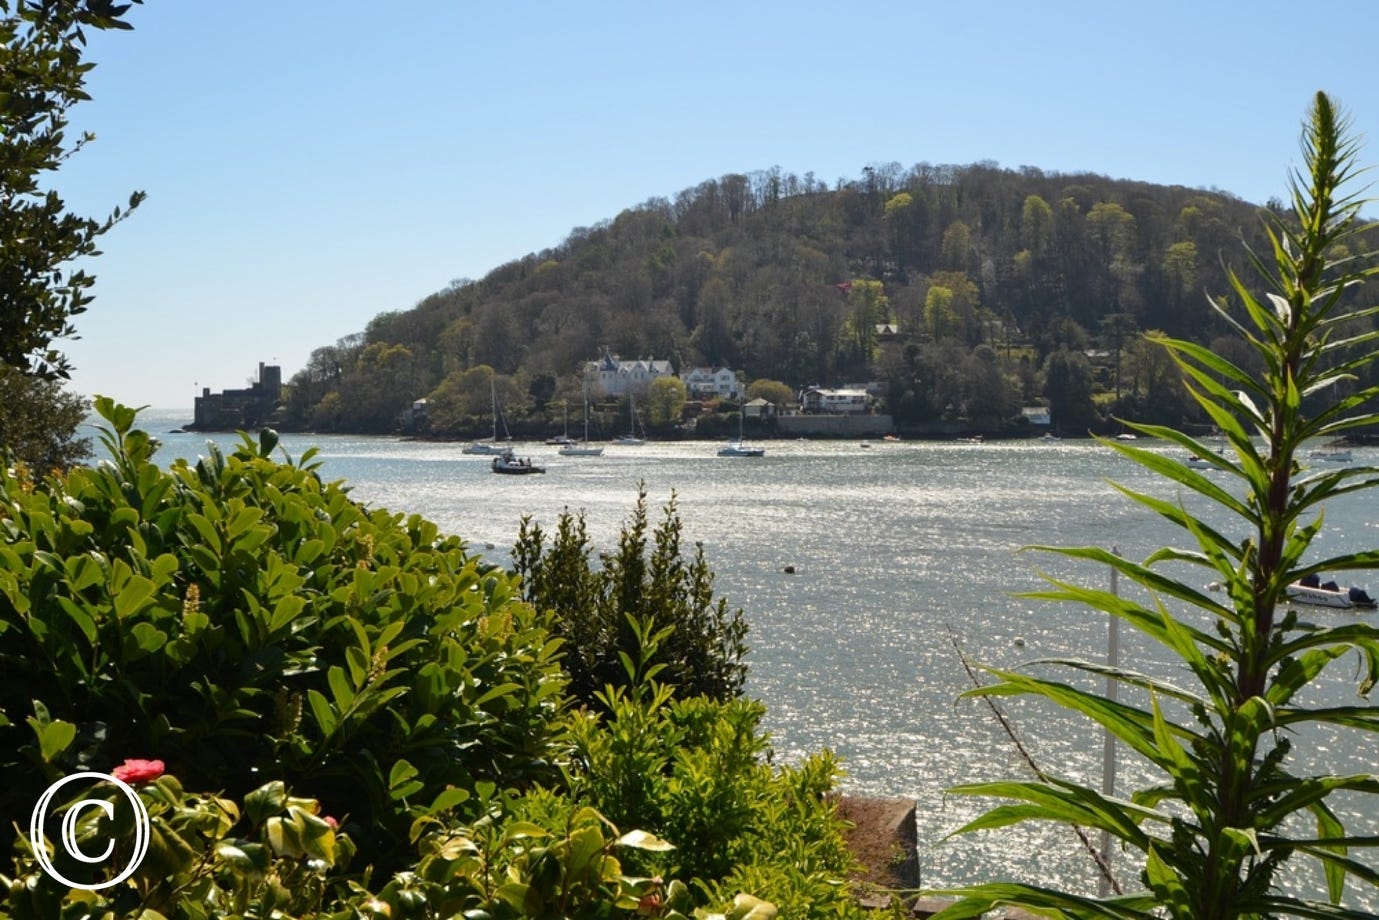 View of the River Dart from The Edge in Kingswear